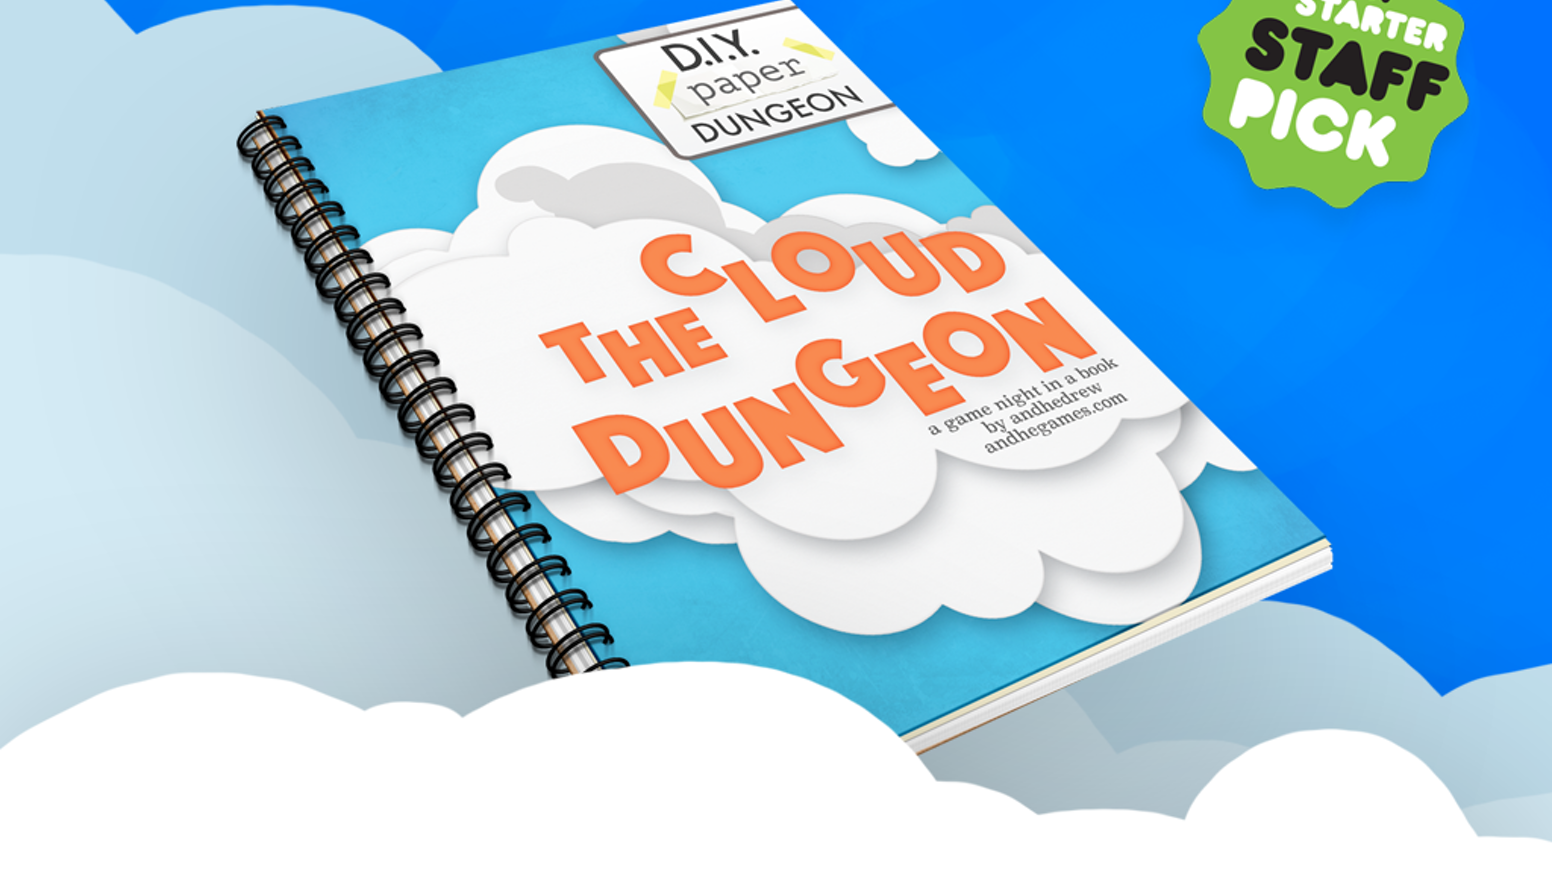 The Cloud Dungeon is a paper craft game-night-in-a-book that you cut apart as you play.